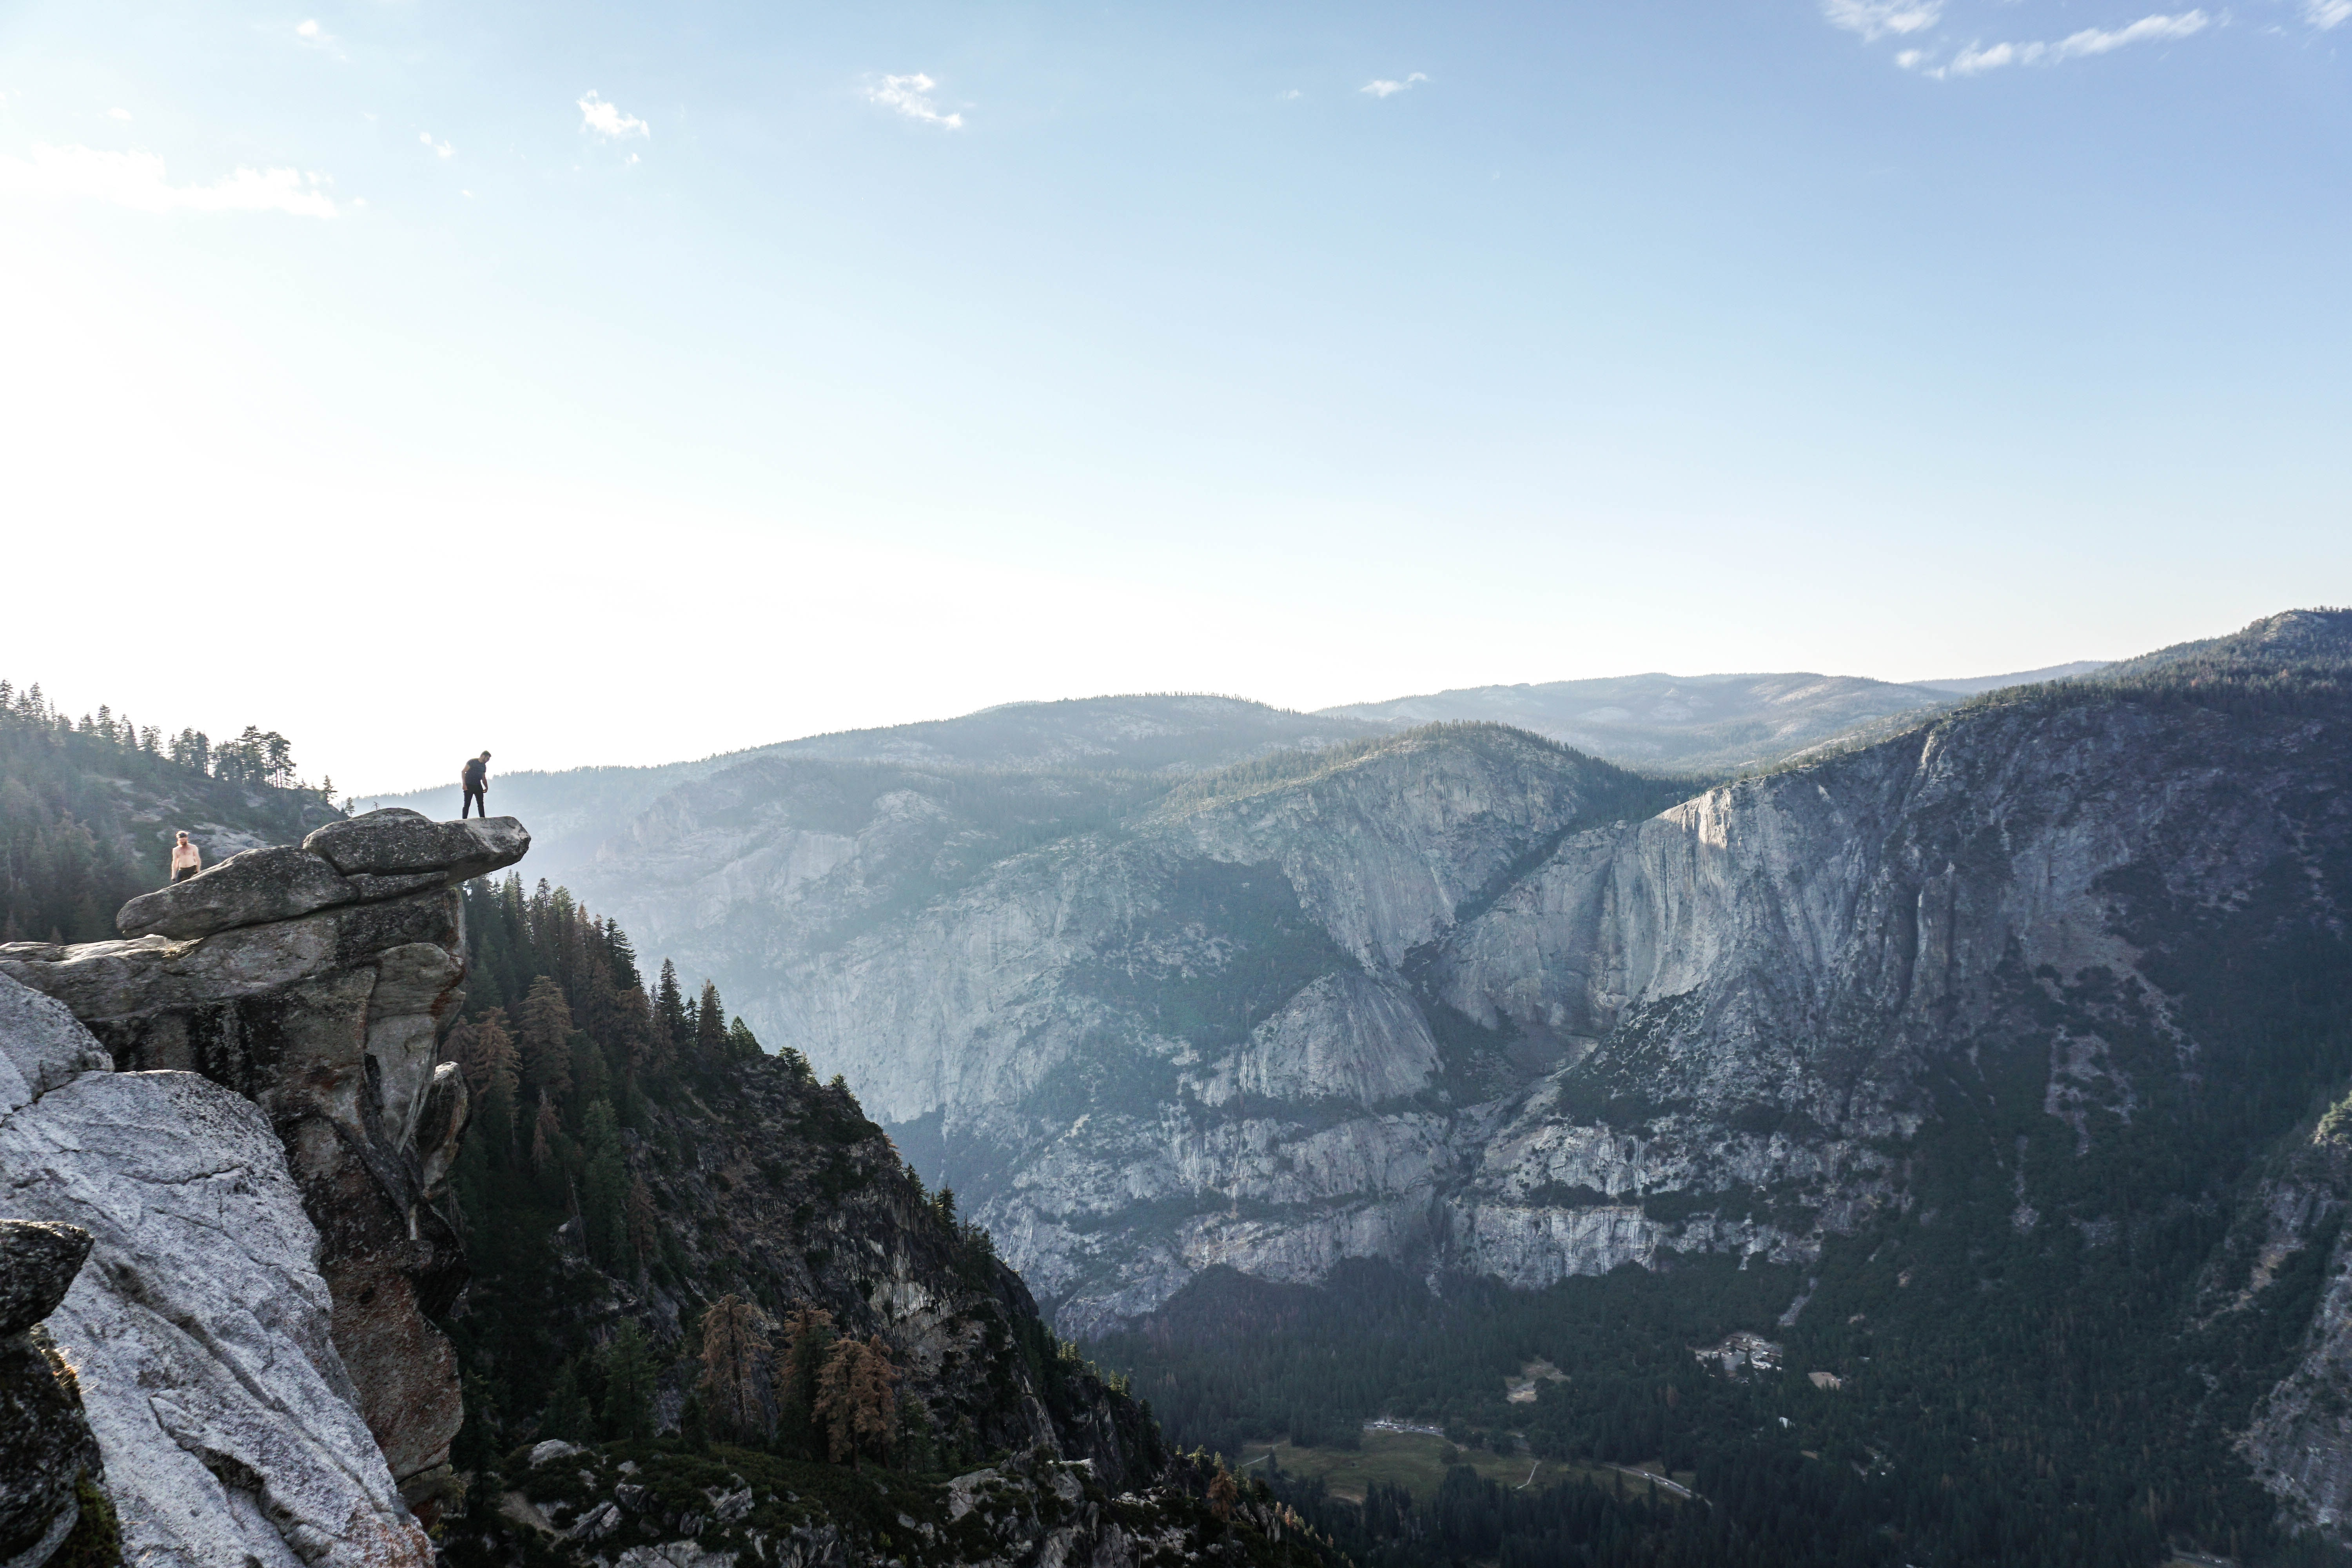 Two people on a precipice over Yosemite Valley